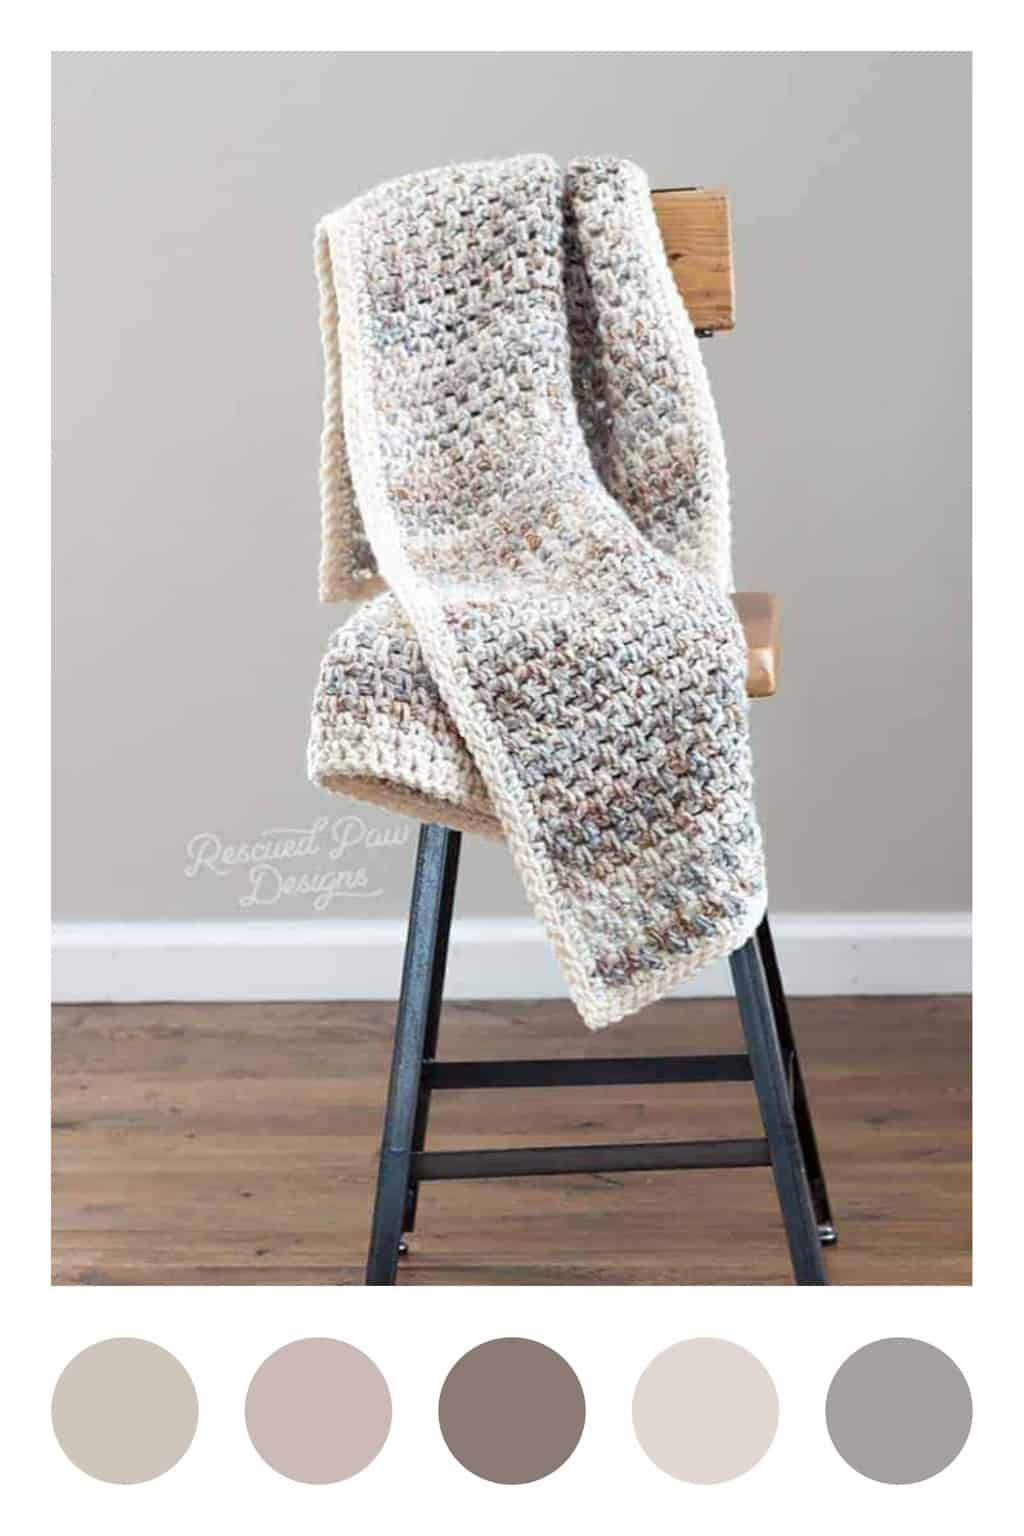 Jane Crochet Throw Blanket Yarn Colors